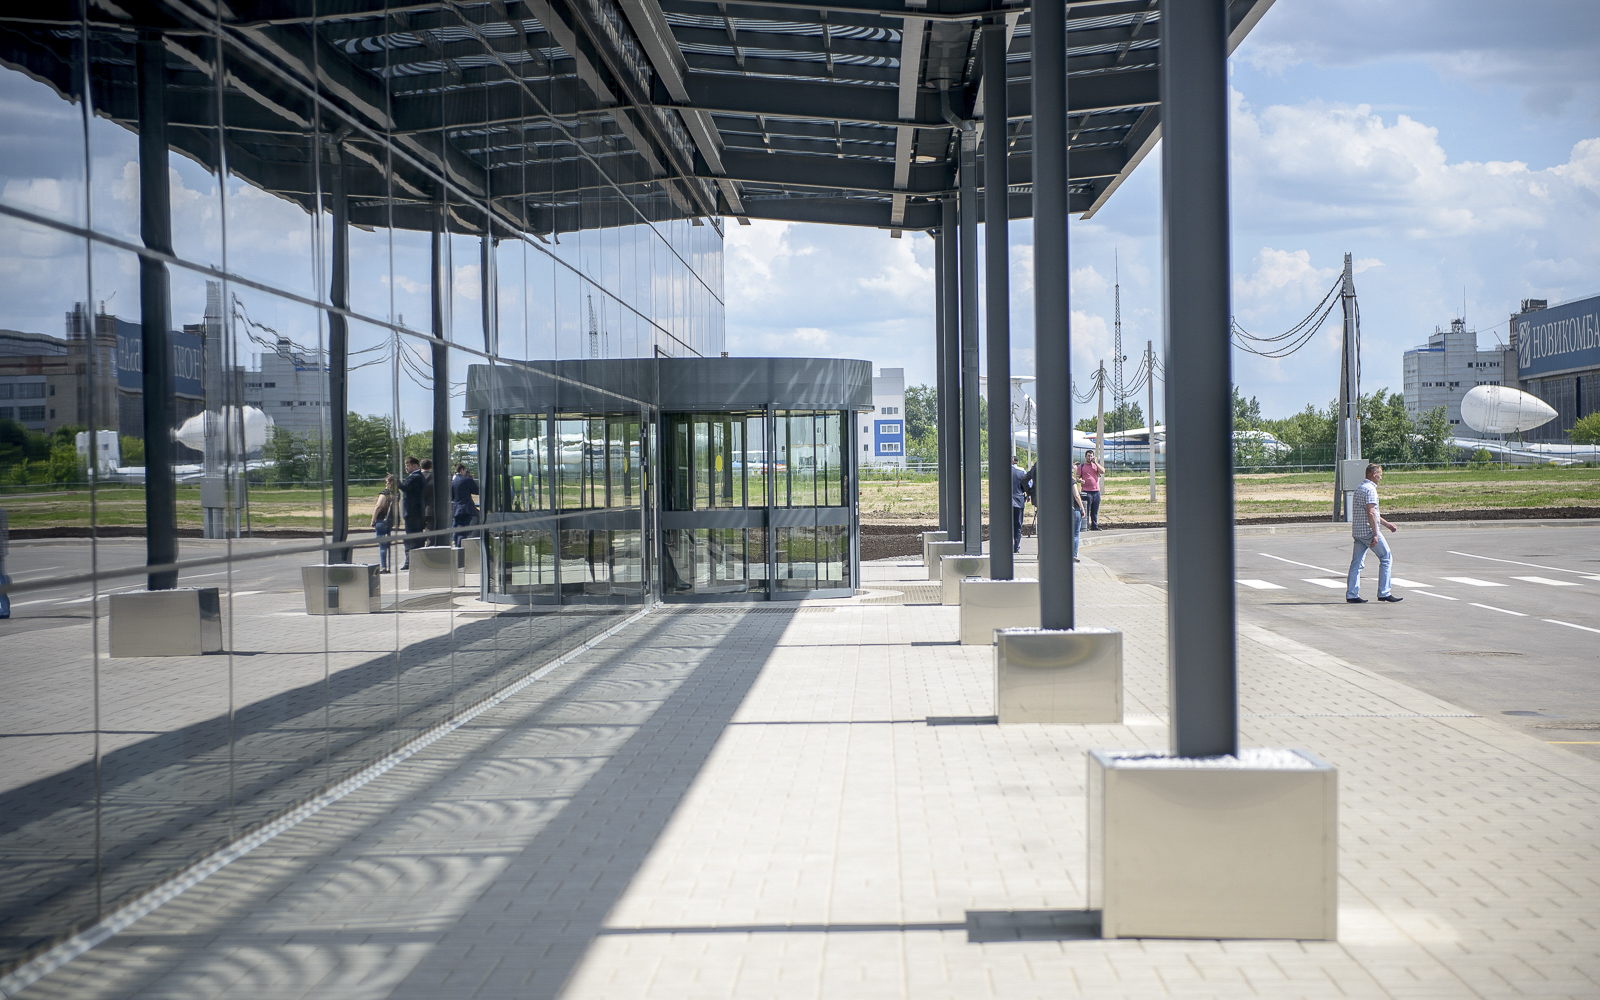 The Zhukovsky airport is open